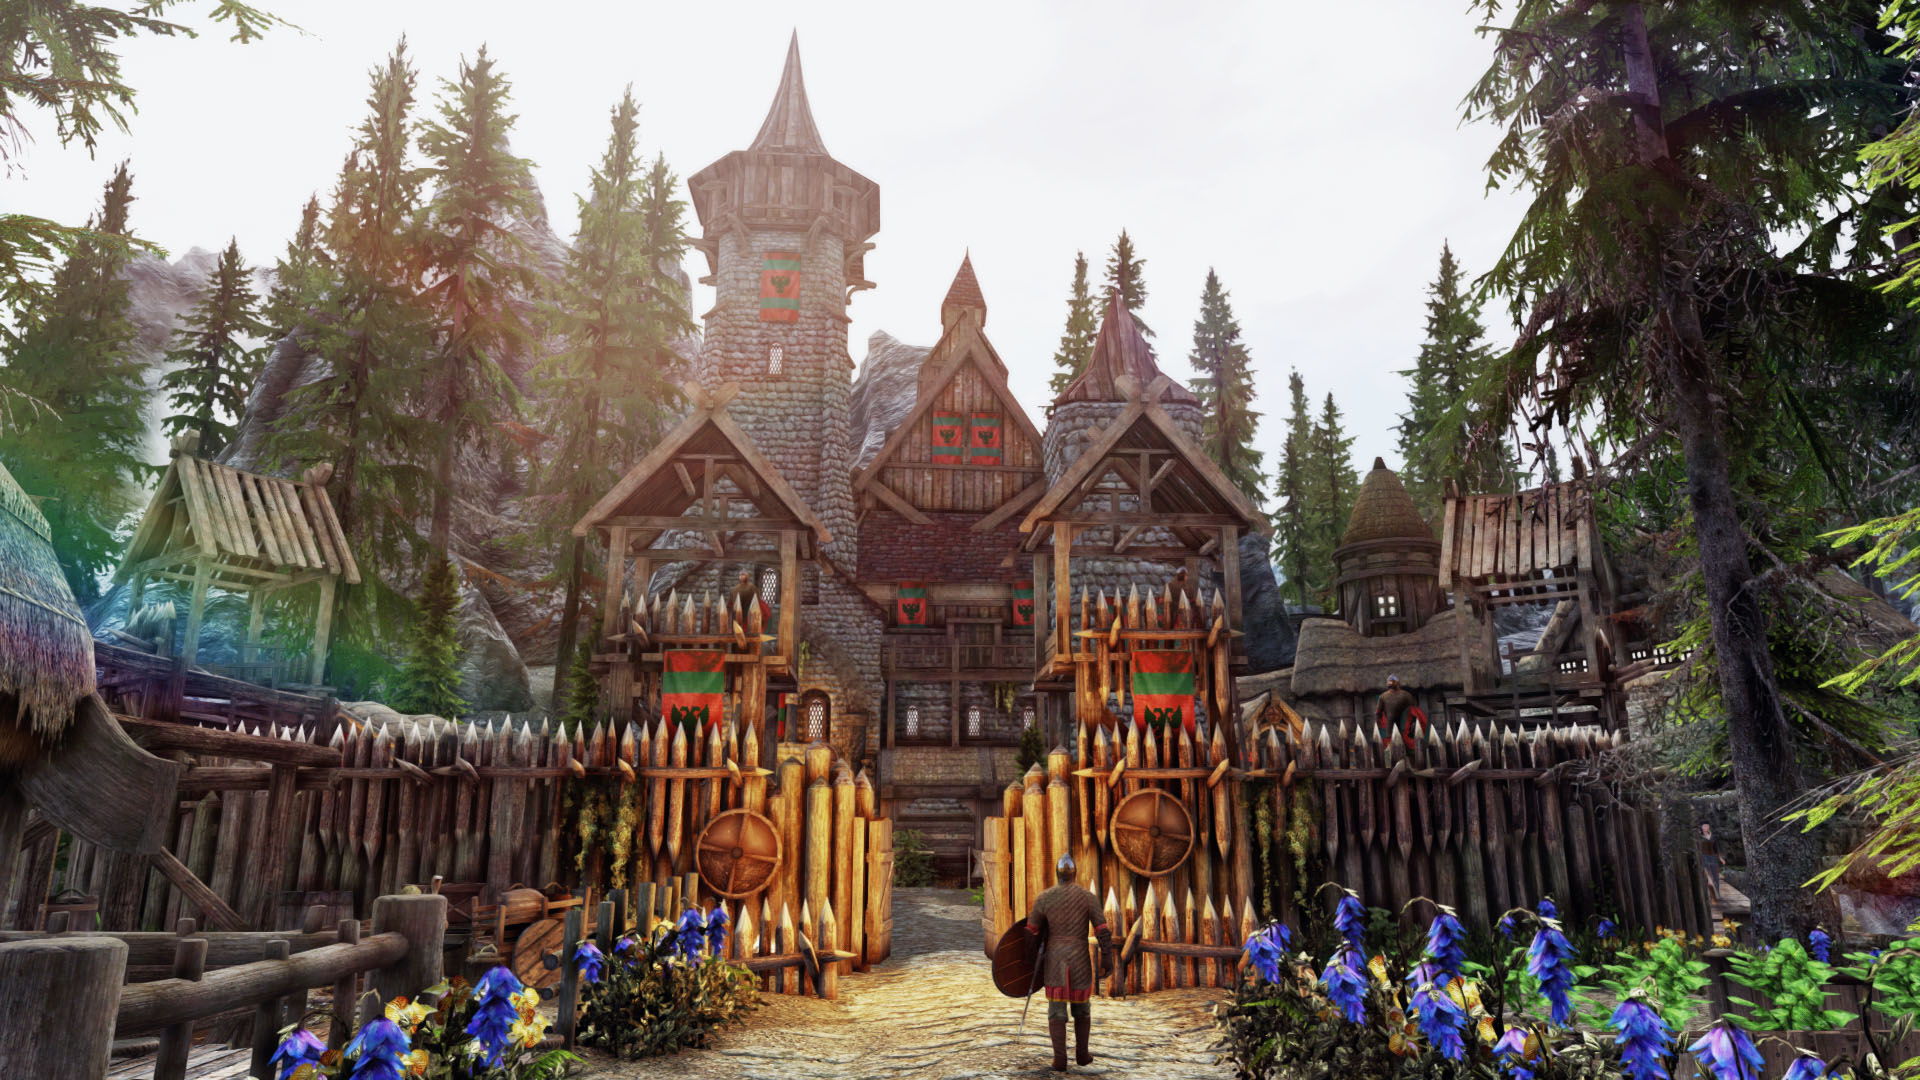 The 25 Best Skyrim Mods in 2019 That Make Skyrim Amazing Again, and